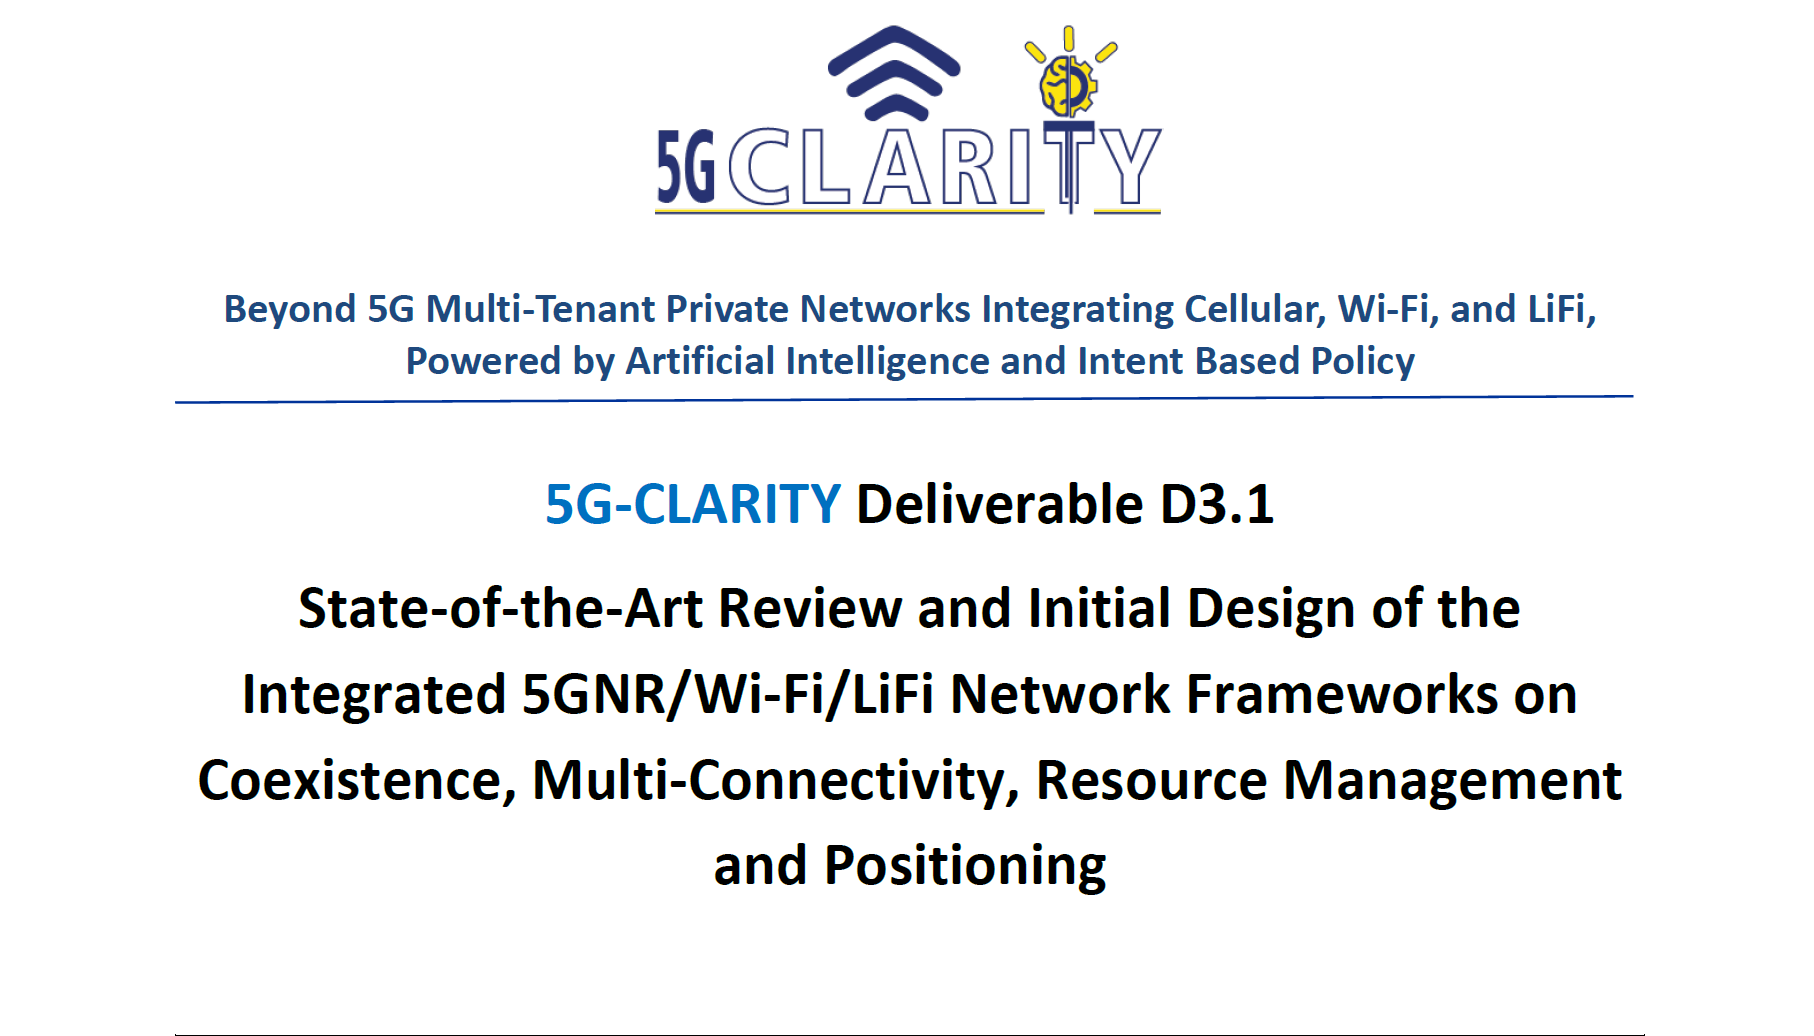 5G-CLARITY Deliverable 3.1 is now available on our webpage! (look at Deliverables)